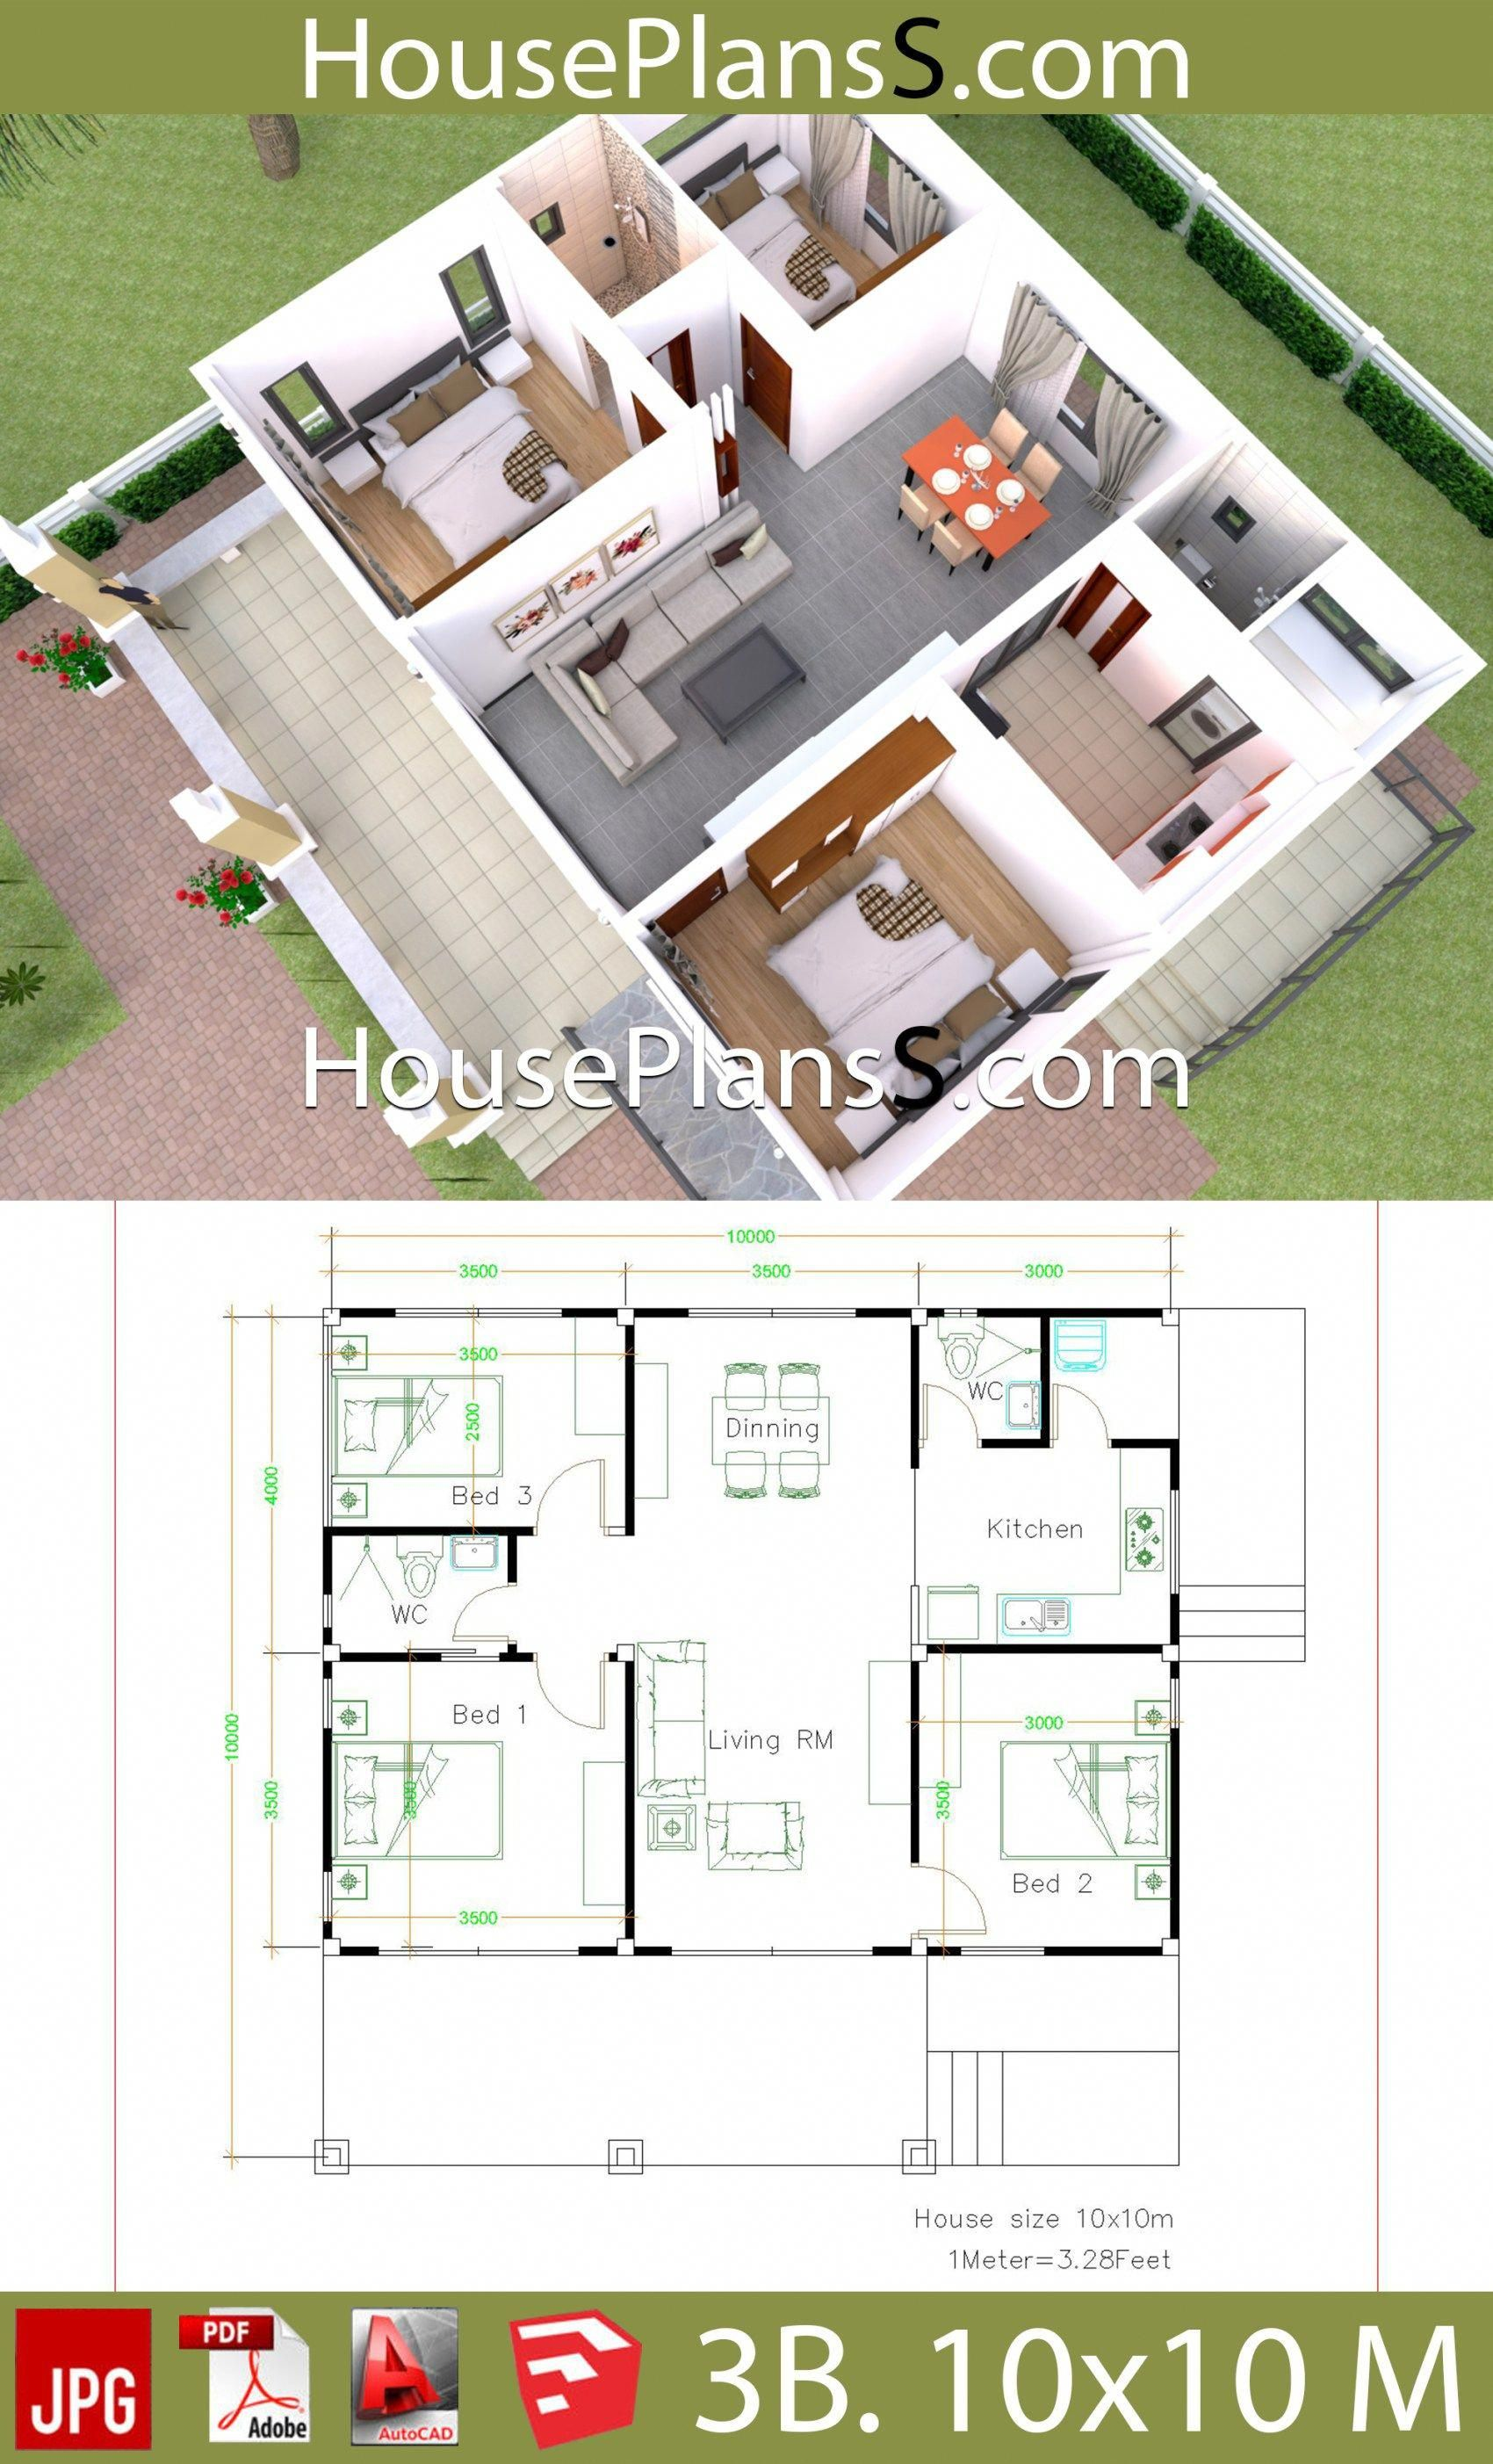 House Design Plans 10x10 With 3 Bedrooms Full Interior House Plans Sam Aframeinterior Small House Design Plans Simple House Design Small House Blueprints